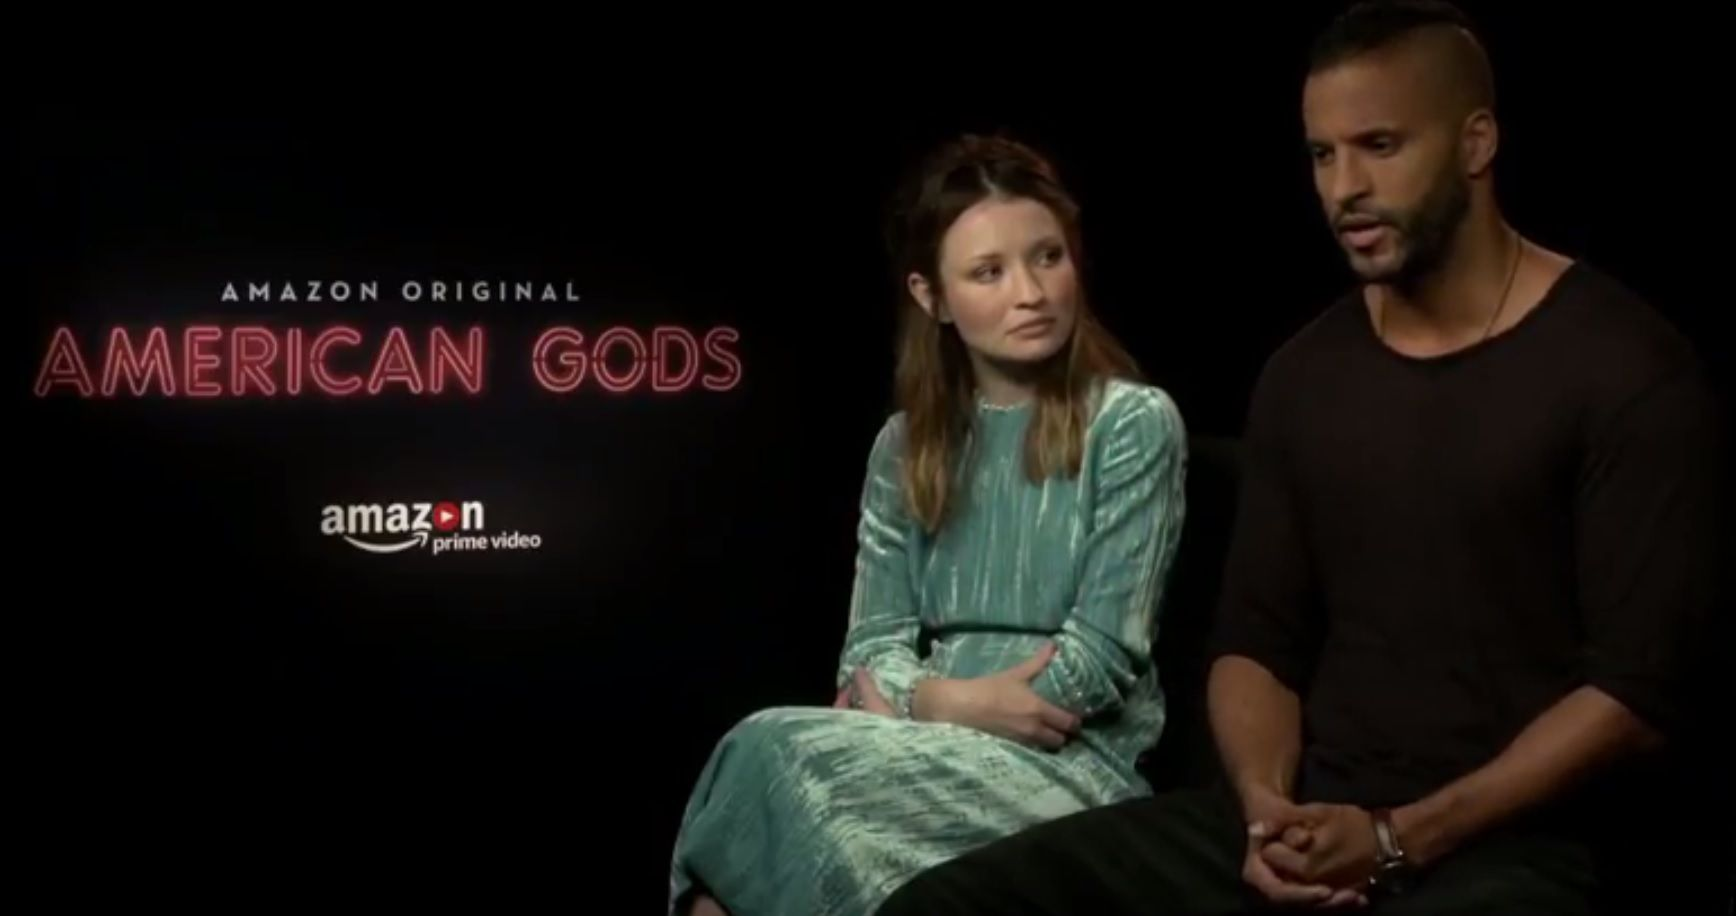 American Gods stars Ricky Whittle and Emily Browning